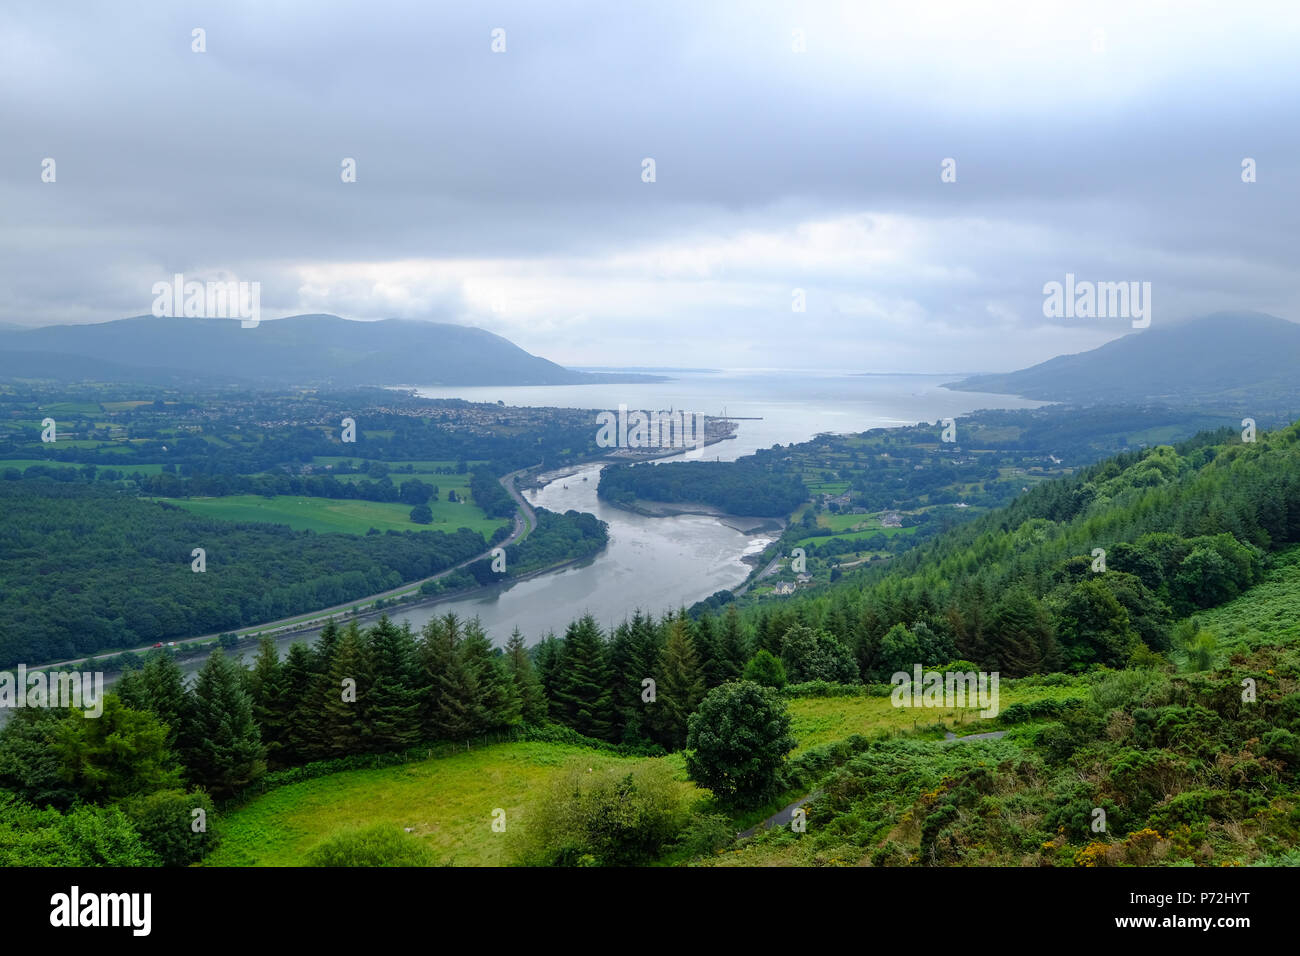 Newry Canal flowing into the Carlingford Lough at Warrenpoint, County Down, Ulster, Northern Ireland, United Kingdom, Europe - Stock Image